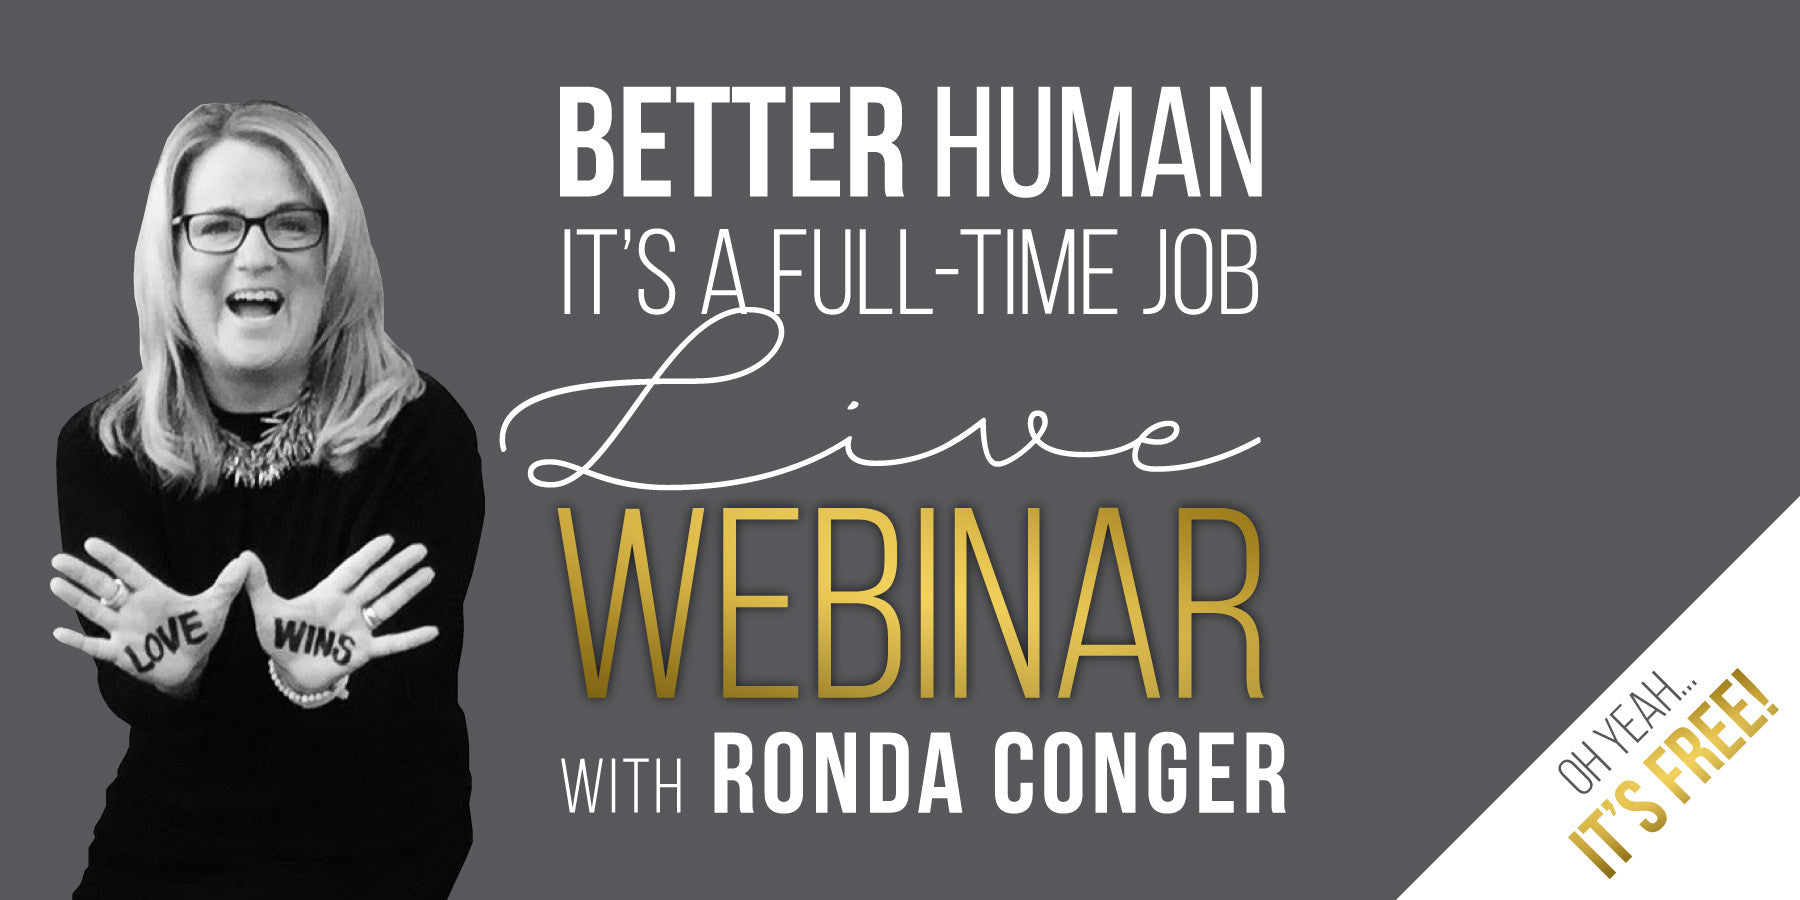 Better Human, It's a Full-Time Job with Ronda Conger